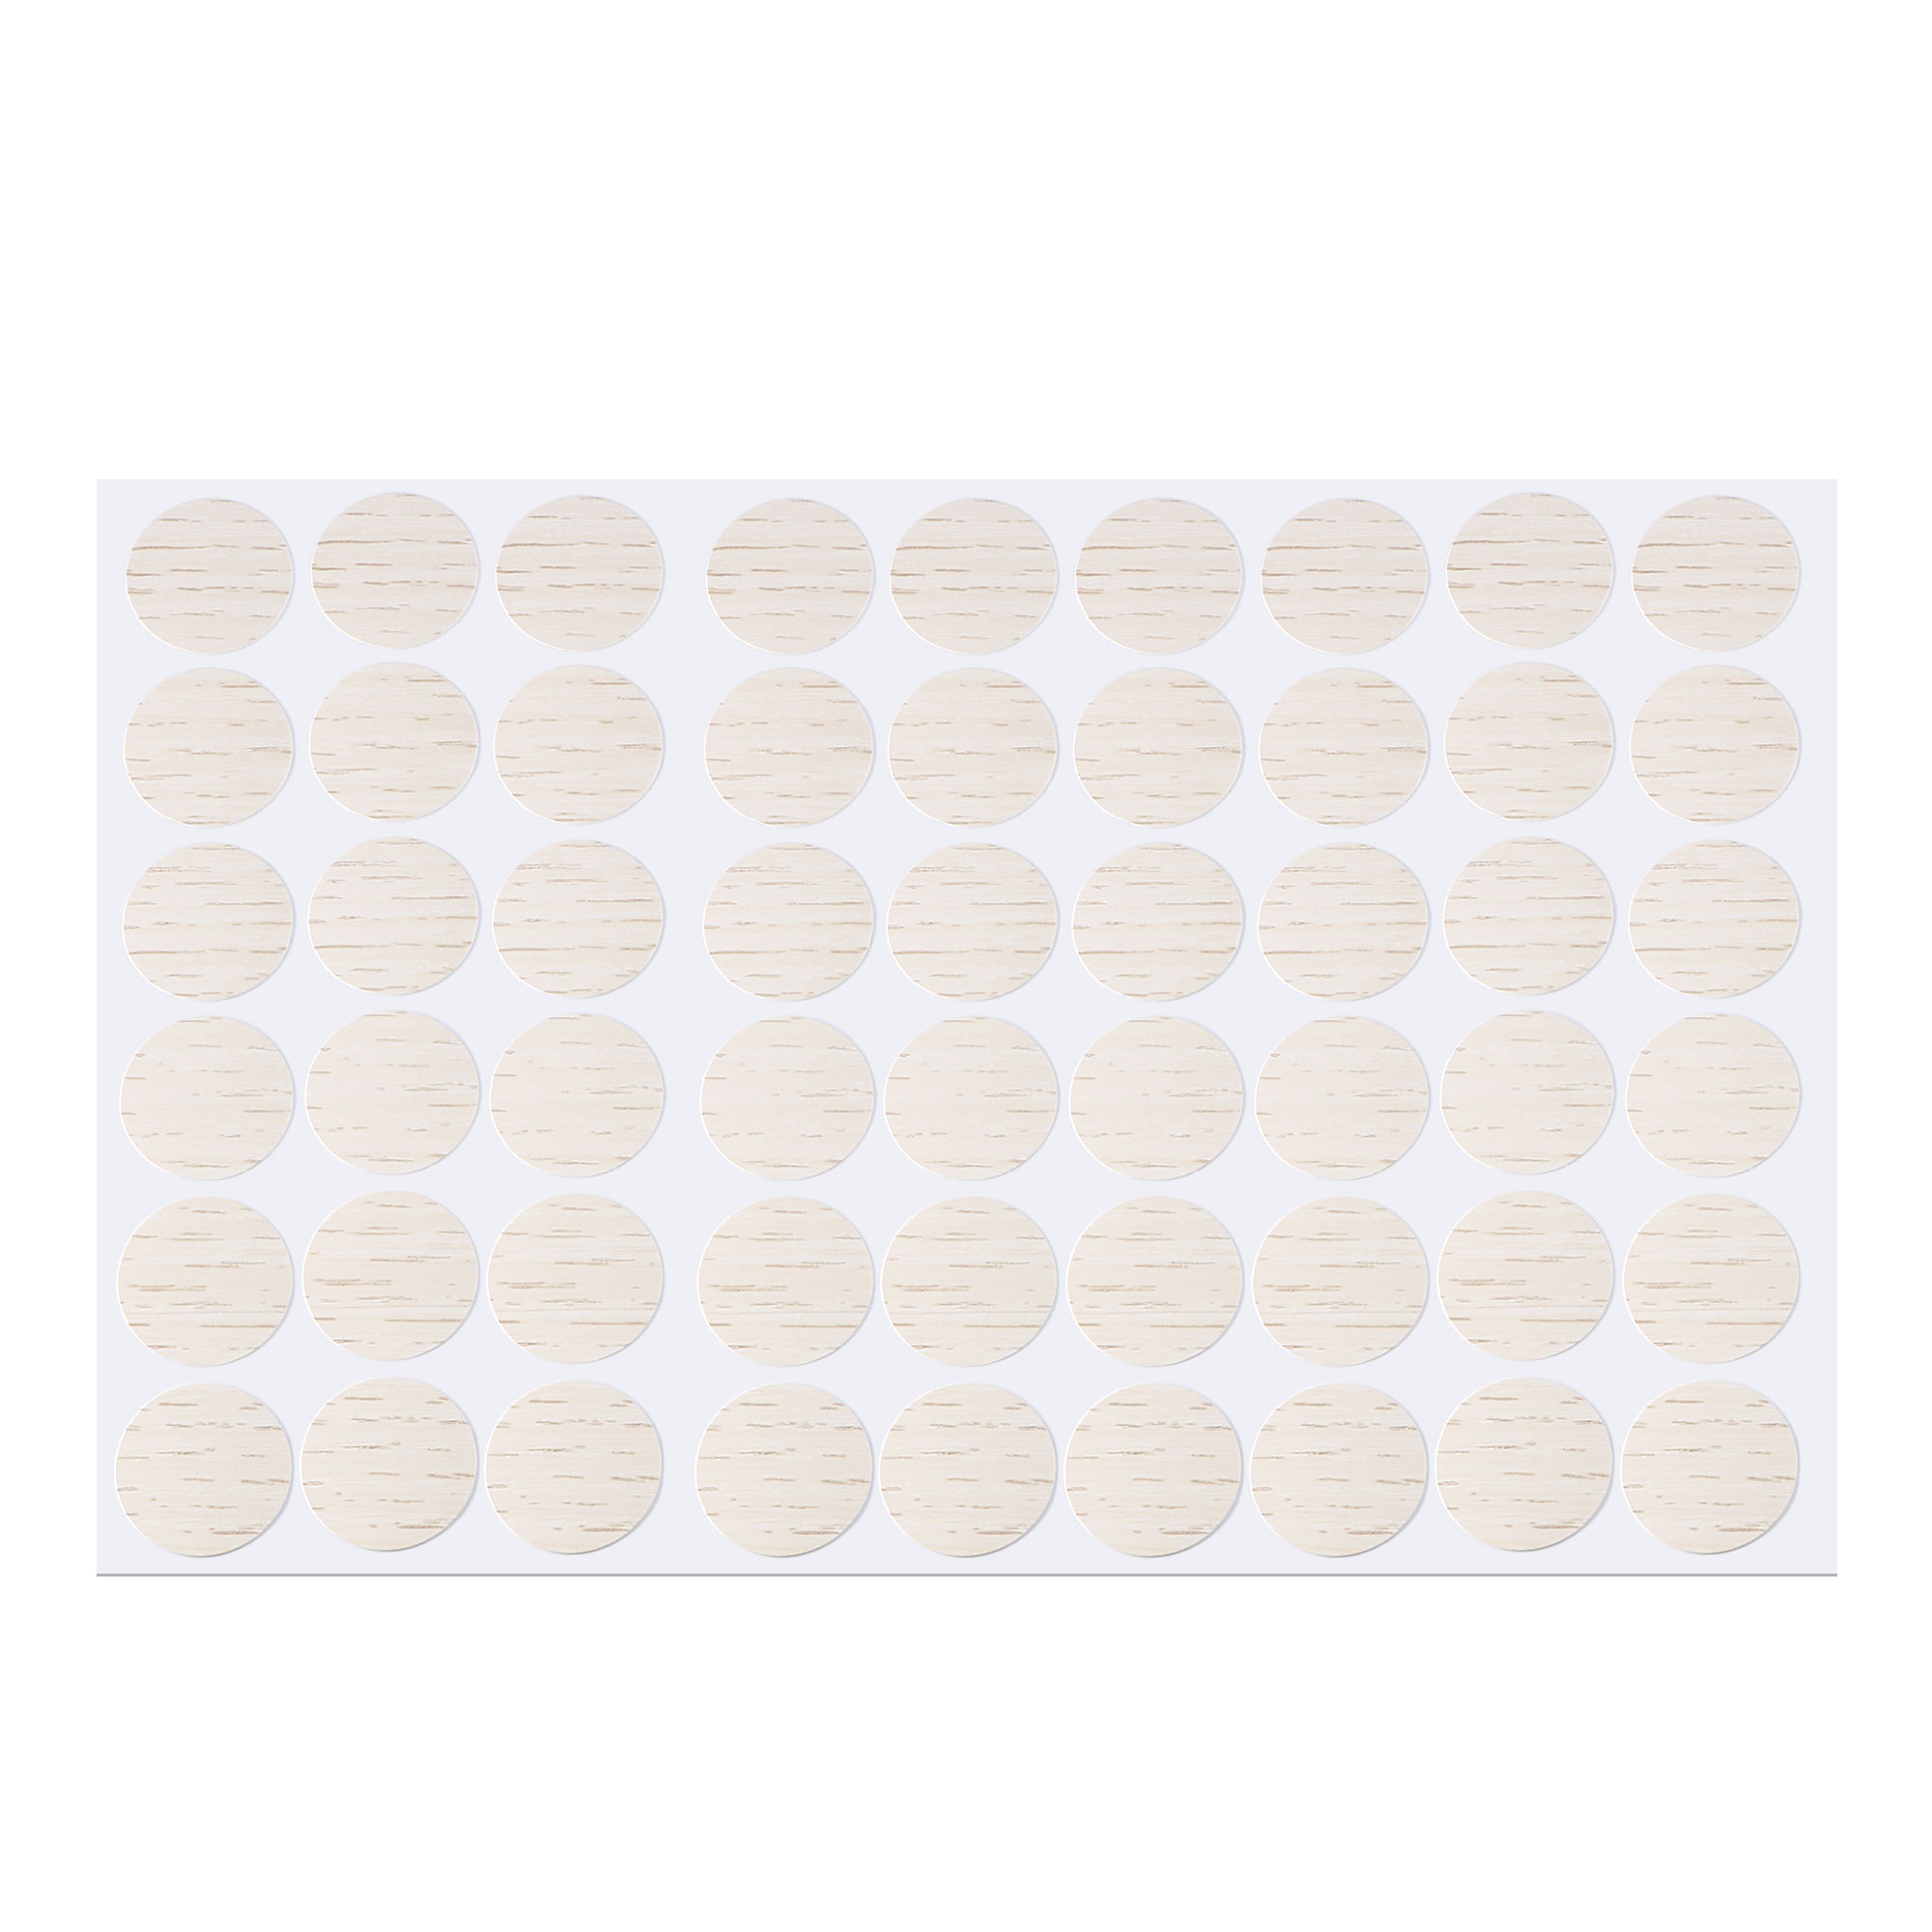 Furniture Self-adhesive Screw Covers Caps Stickers Ornament Beige 54 in 1